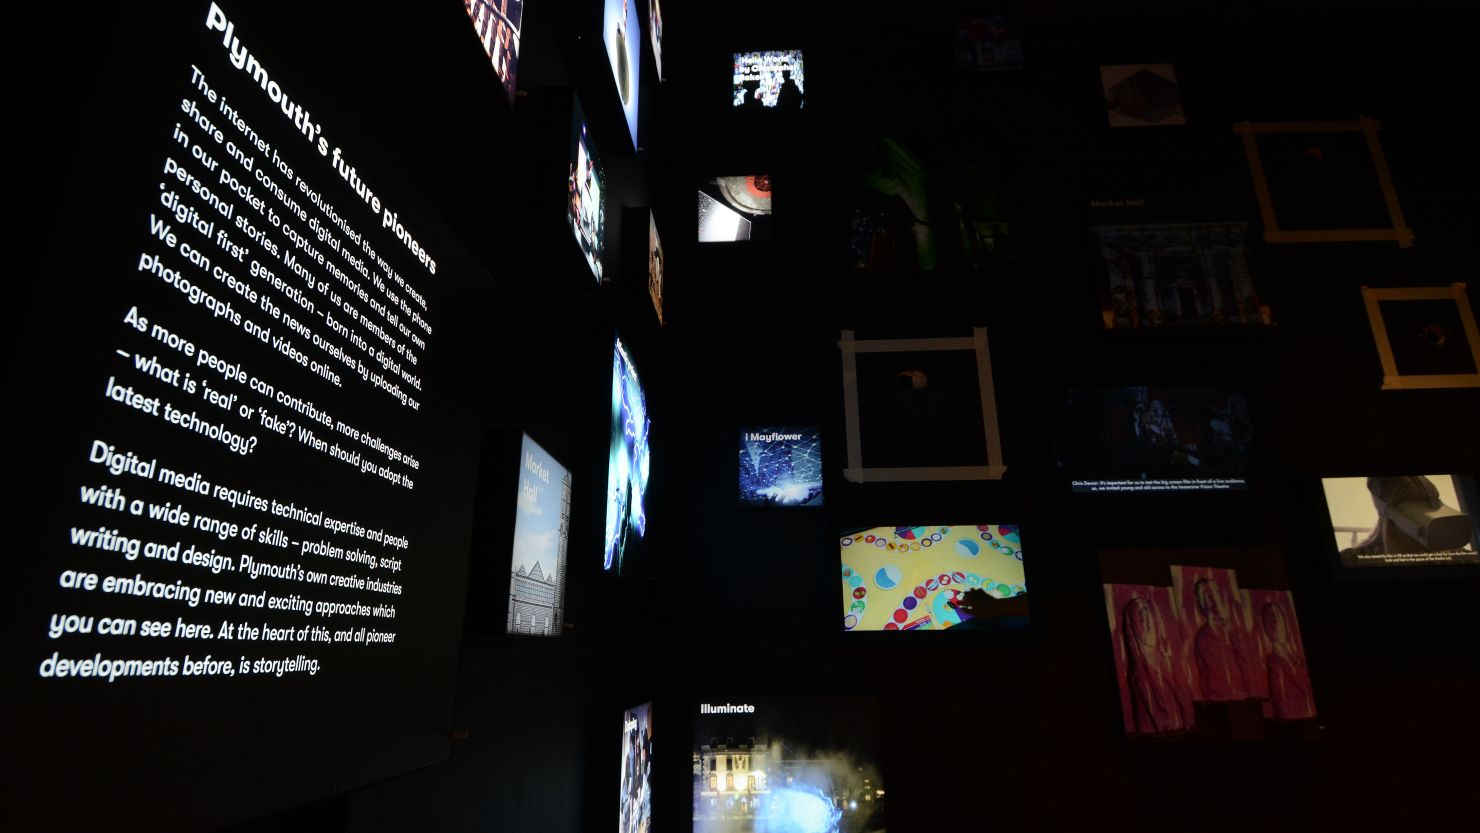 The 'Media Lab' gallery at The Box, Plymouth